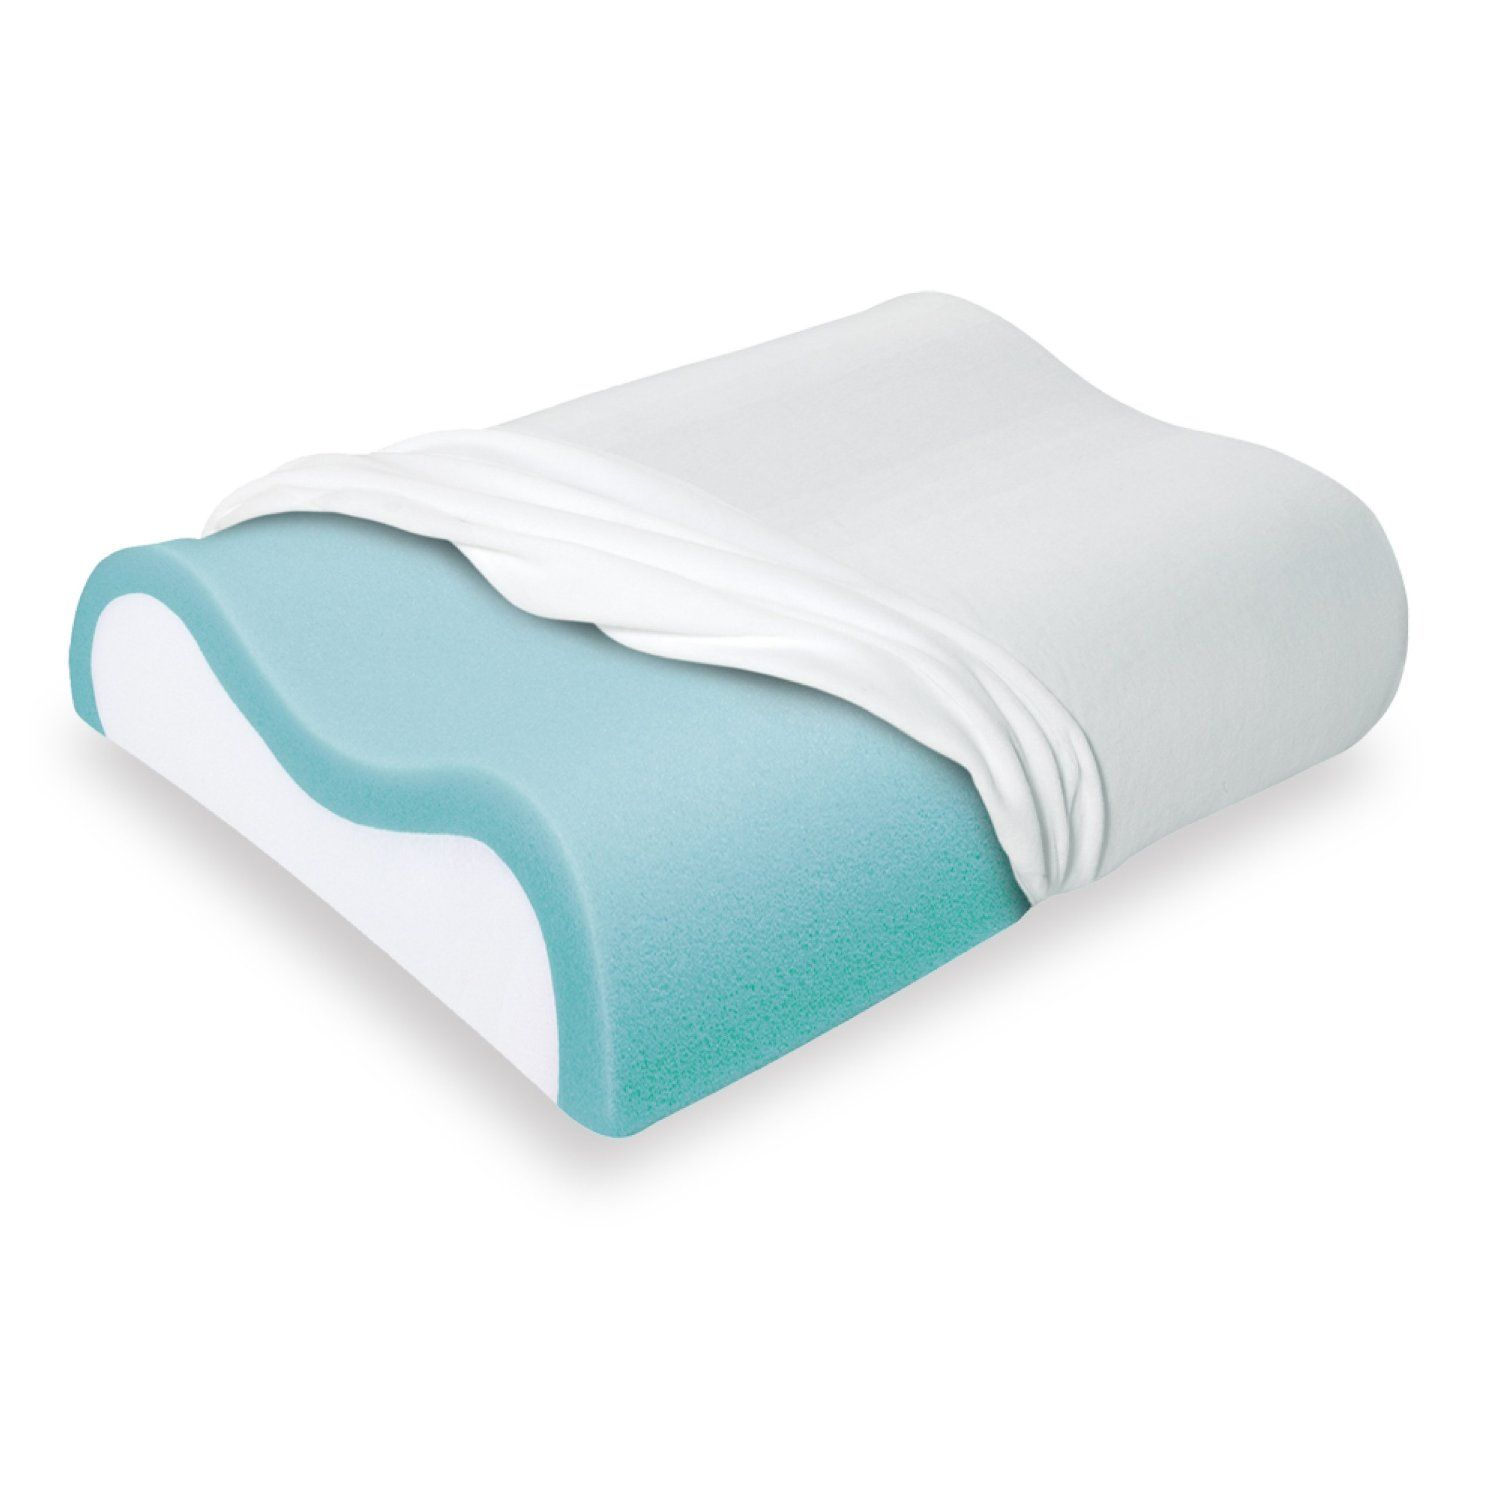 Sleep Innovations Cool Contour Memory Foam Pillow For